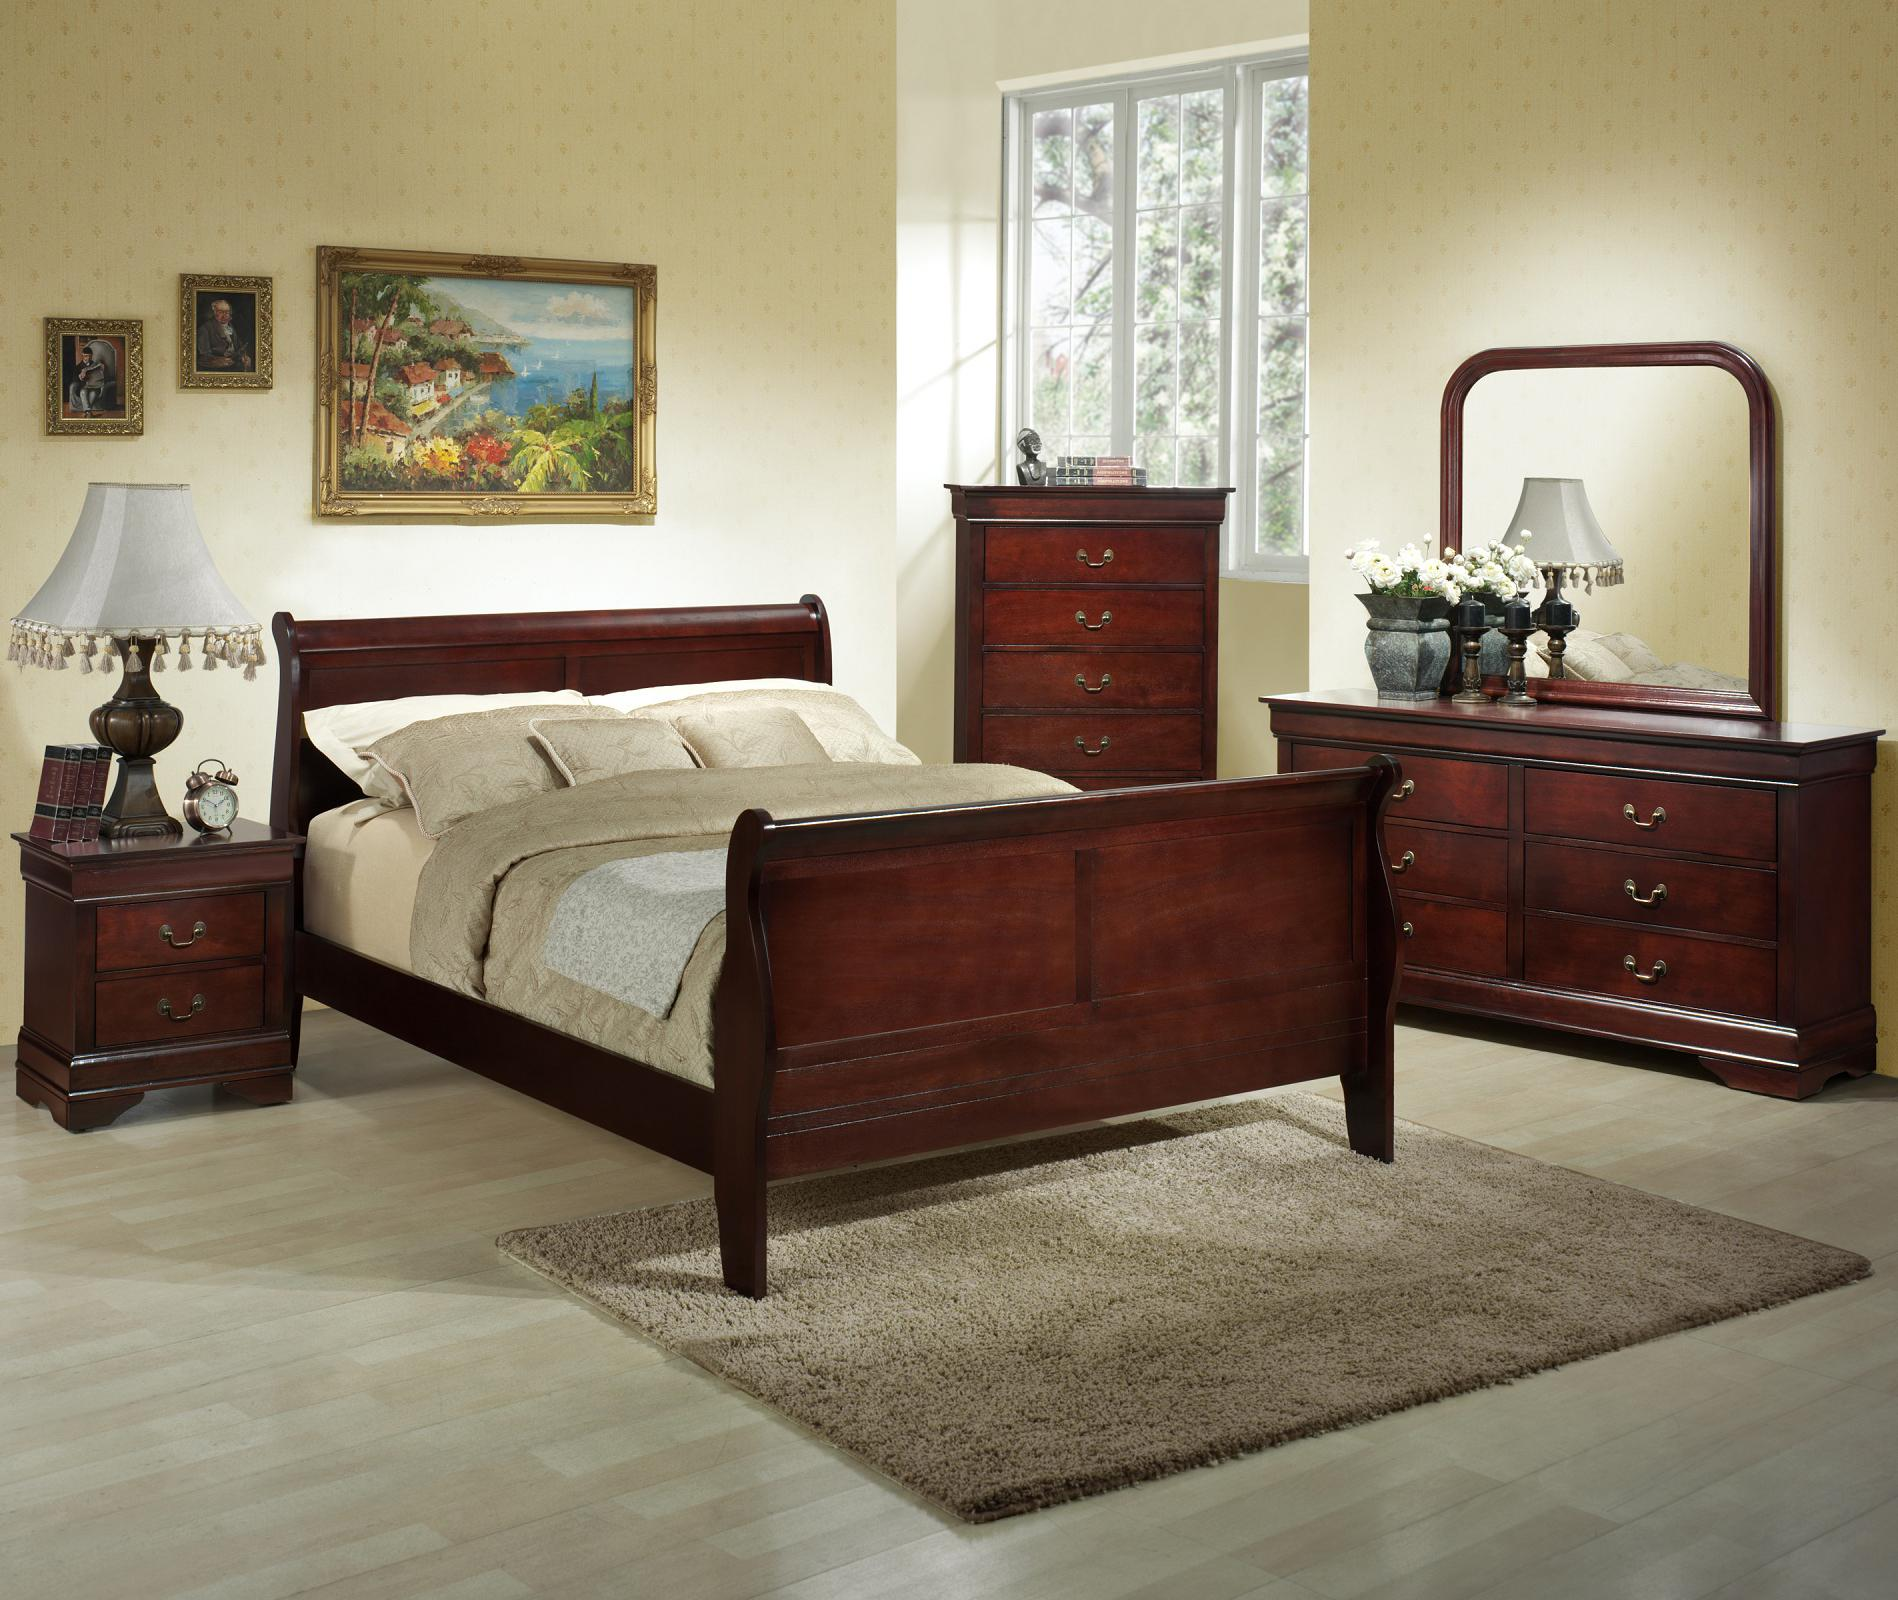 Lifestyle Louis Phillipe Full Bedroom Group - Item Number: C5933 F Bedroom Group